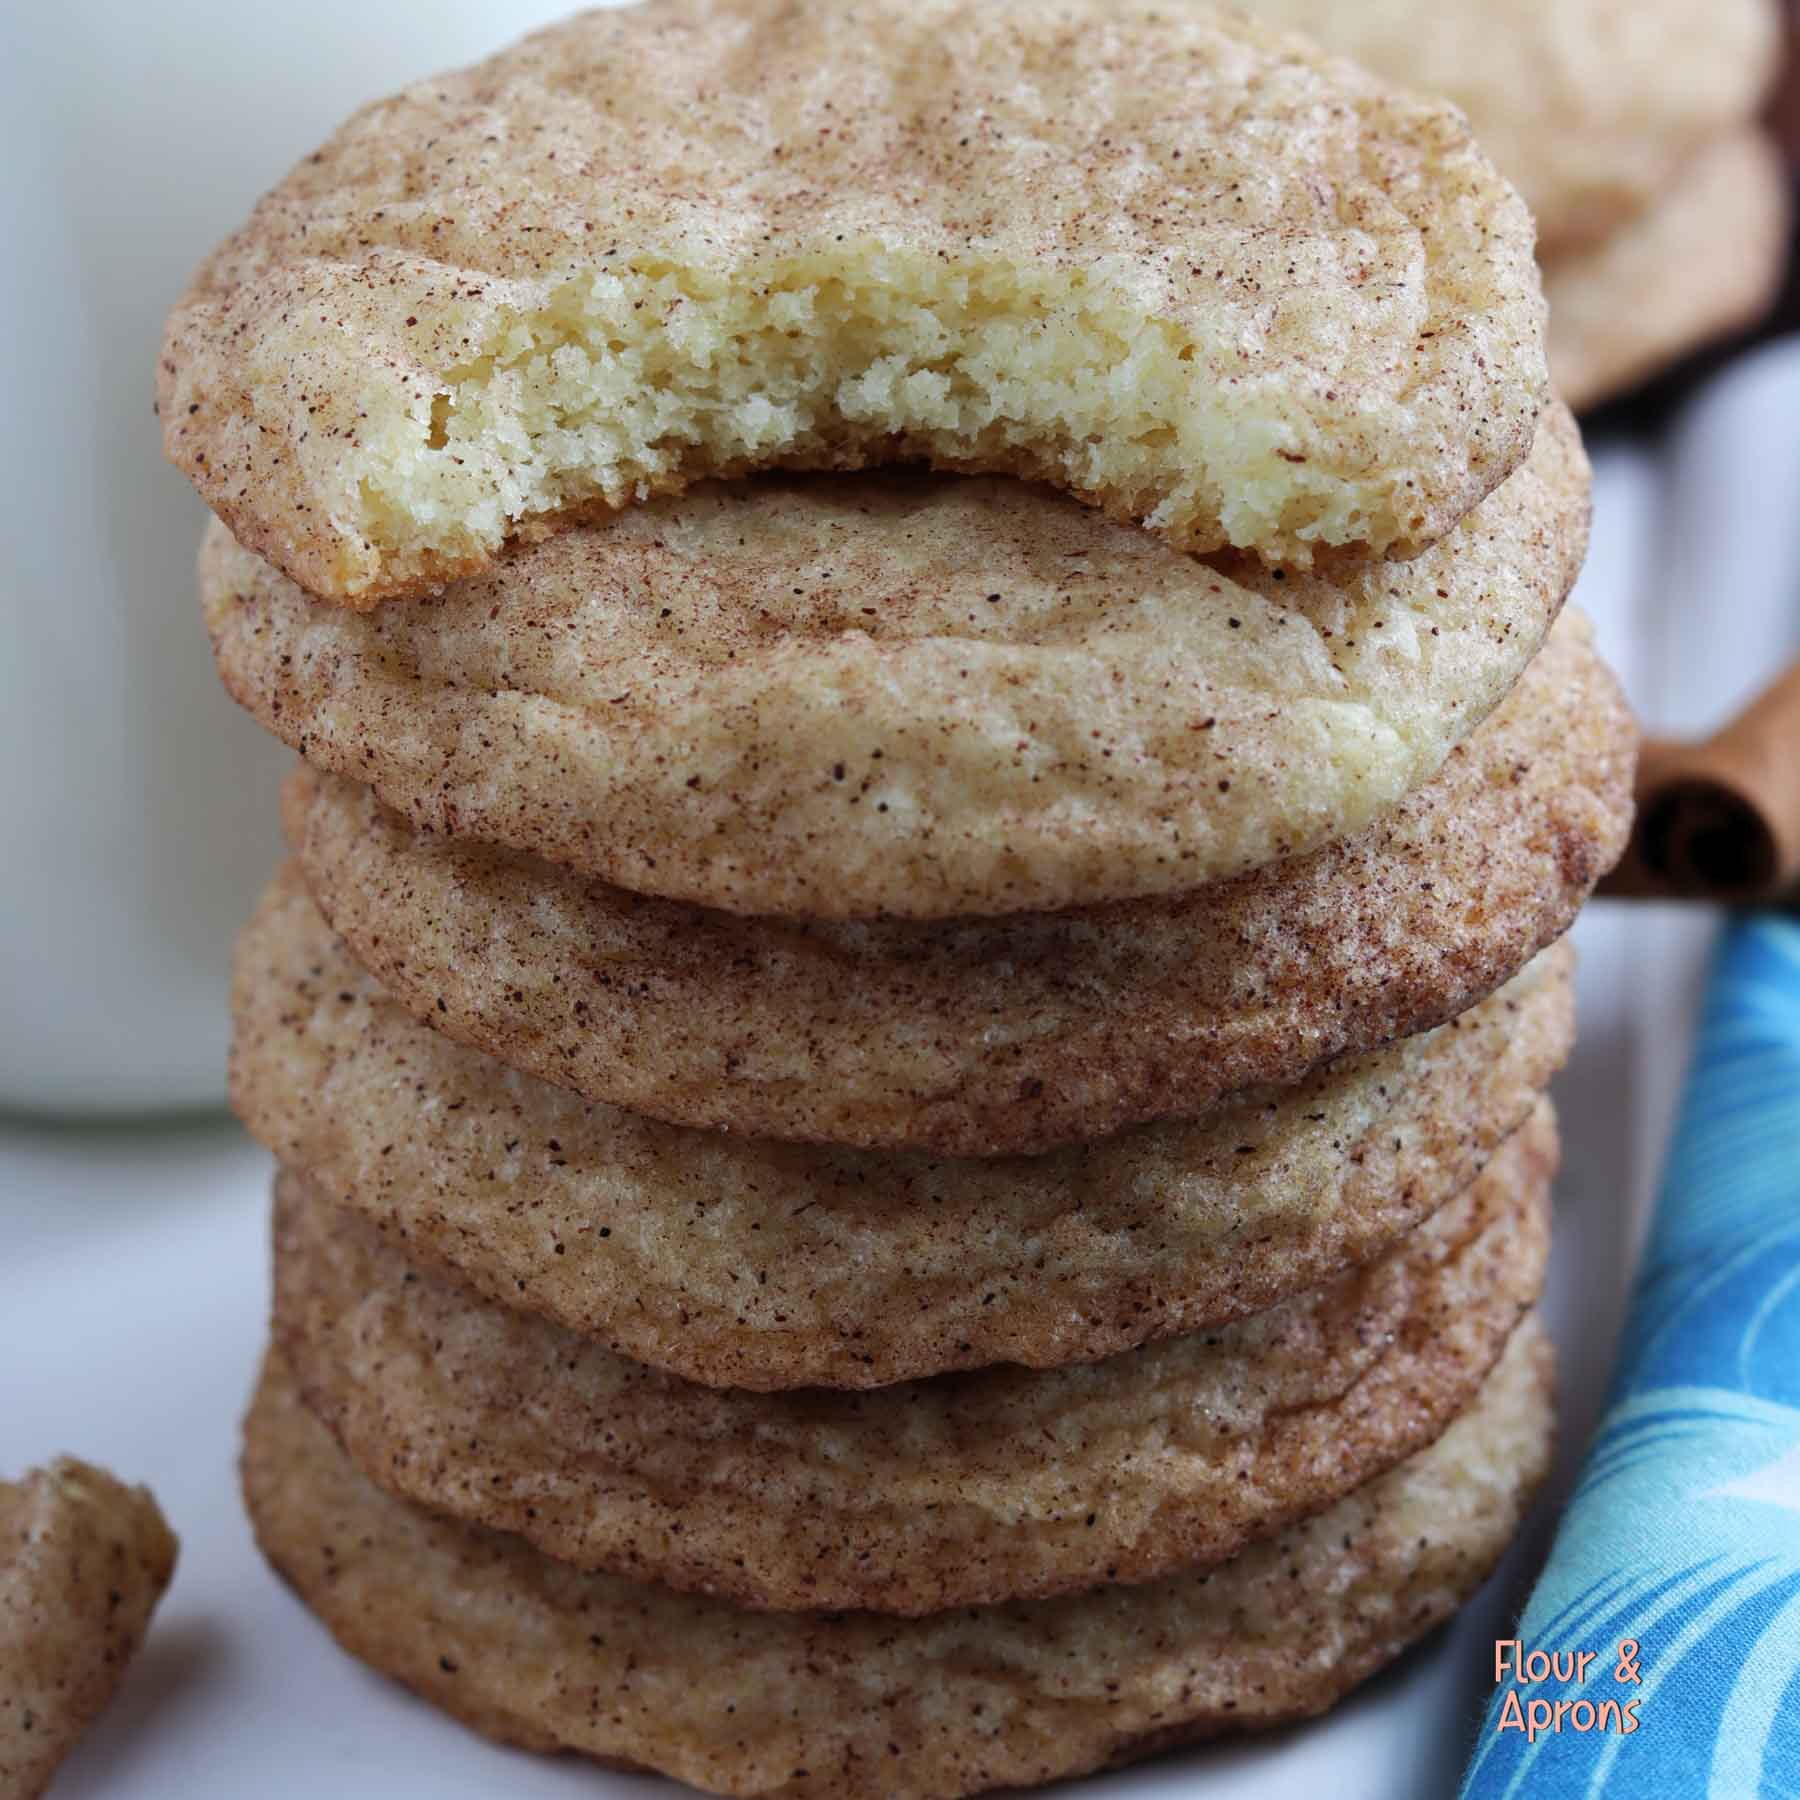 Stock of snickerdoodle cookies with a bite taken out of the top one.